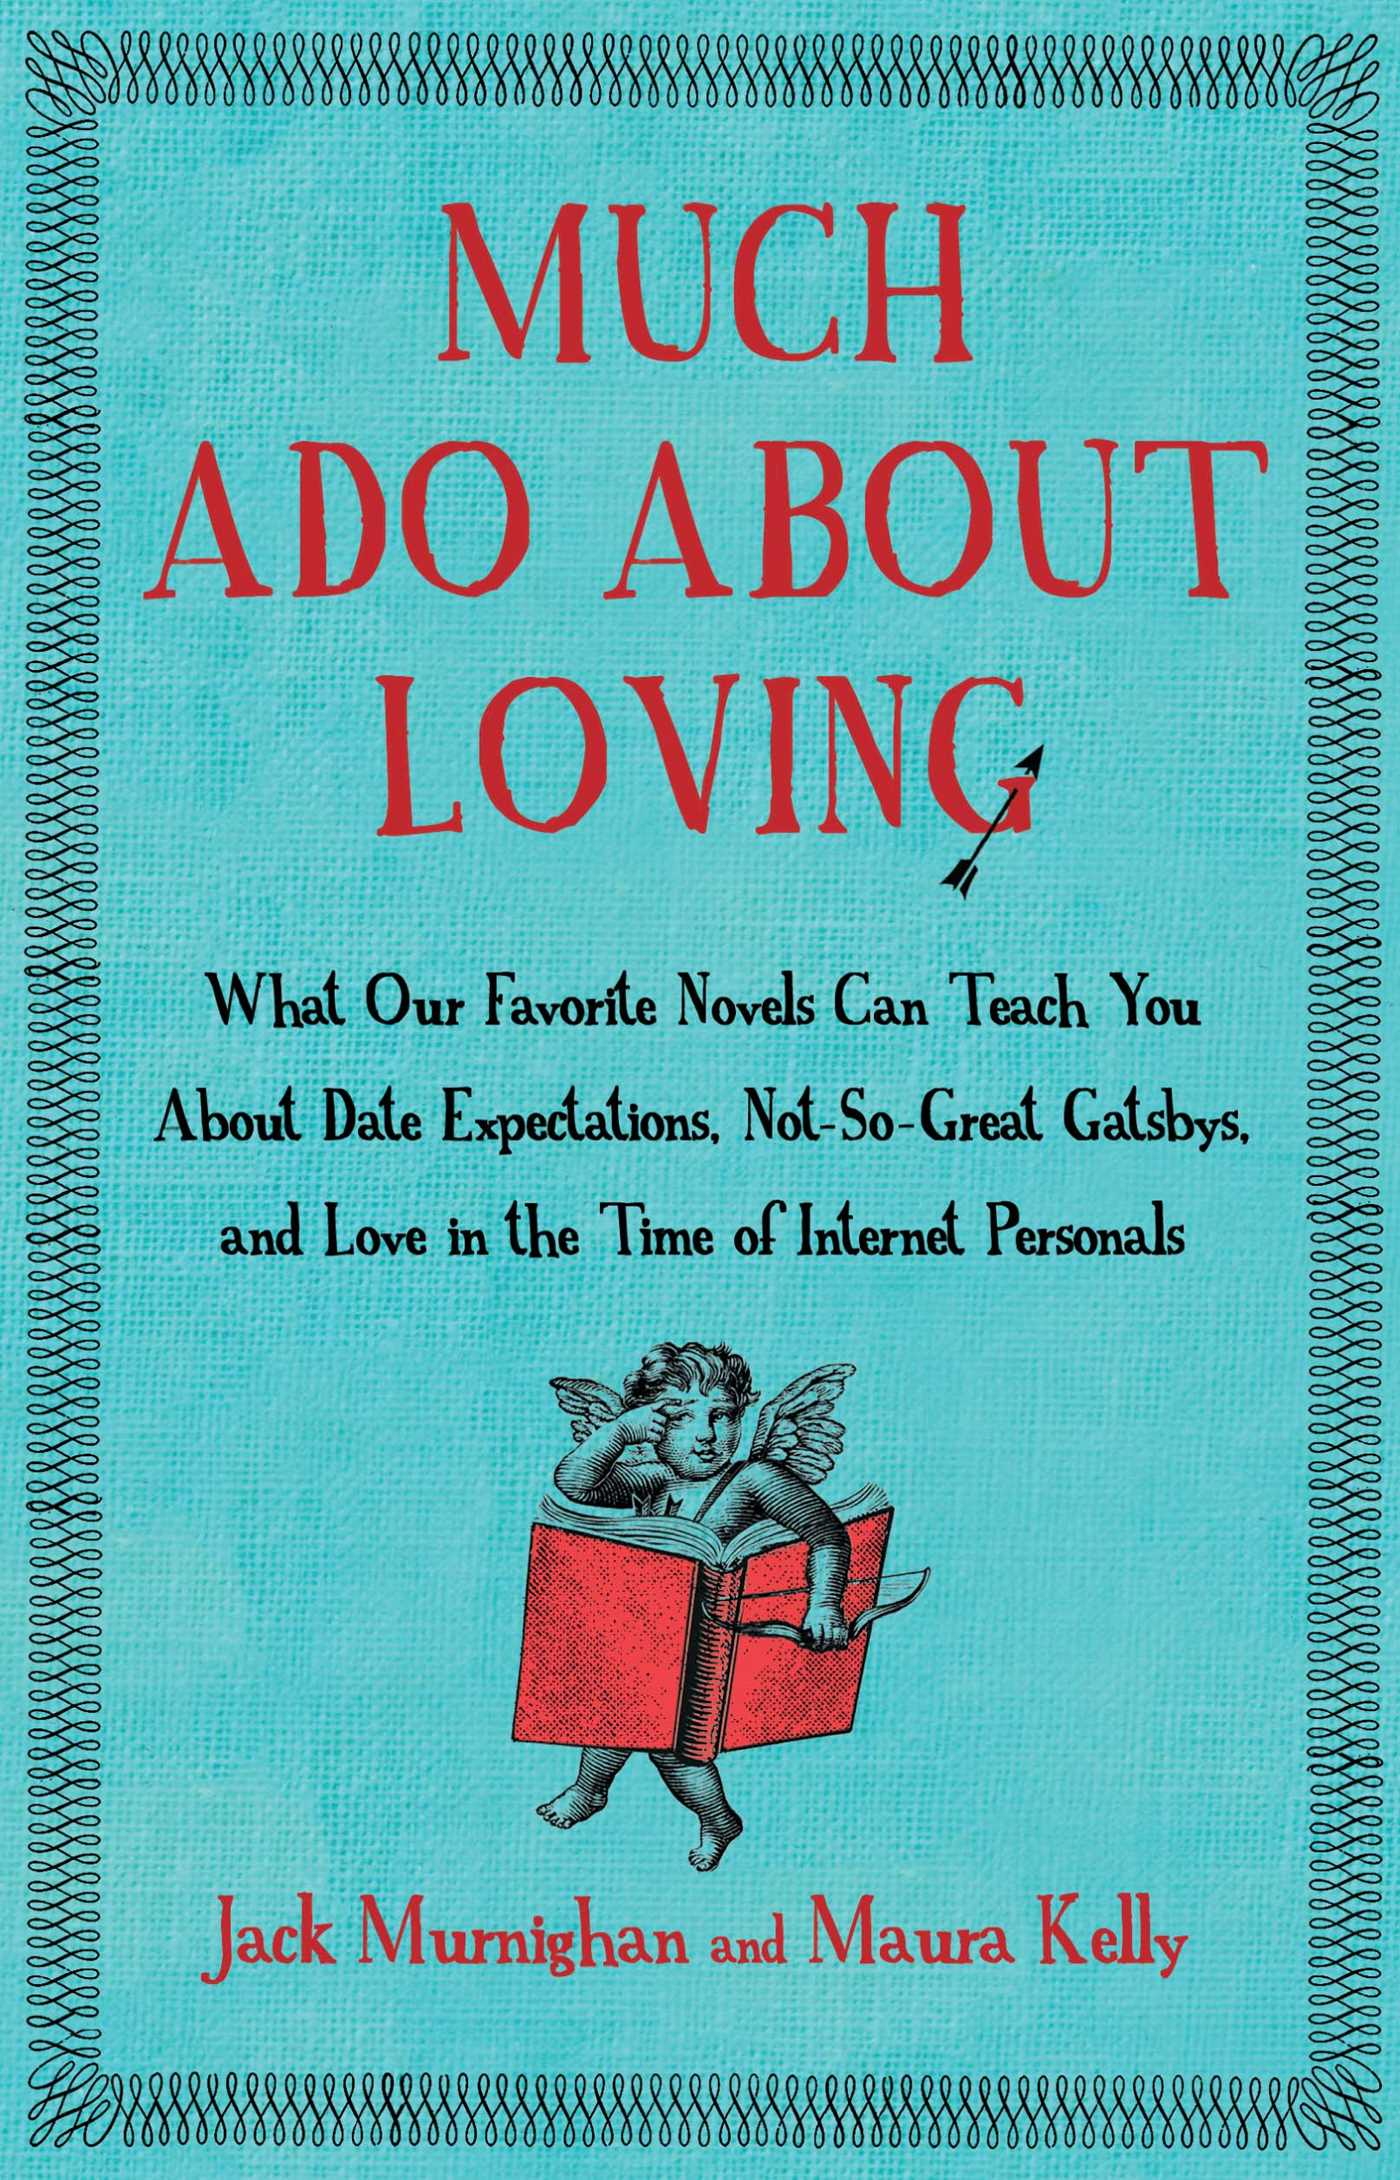 Much ado about loving 9781451621259 hr